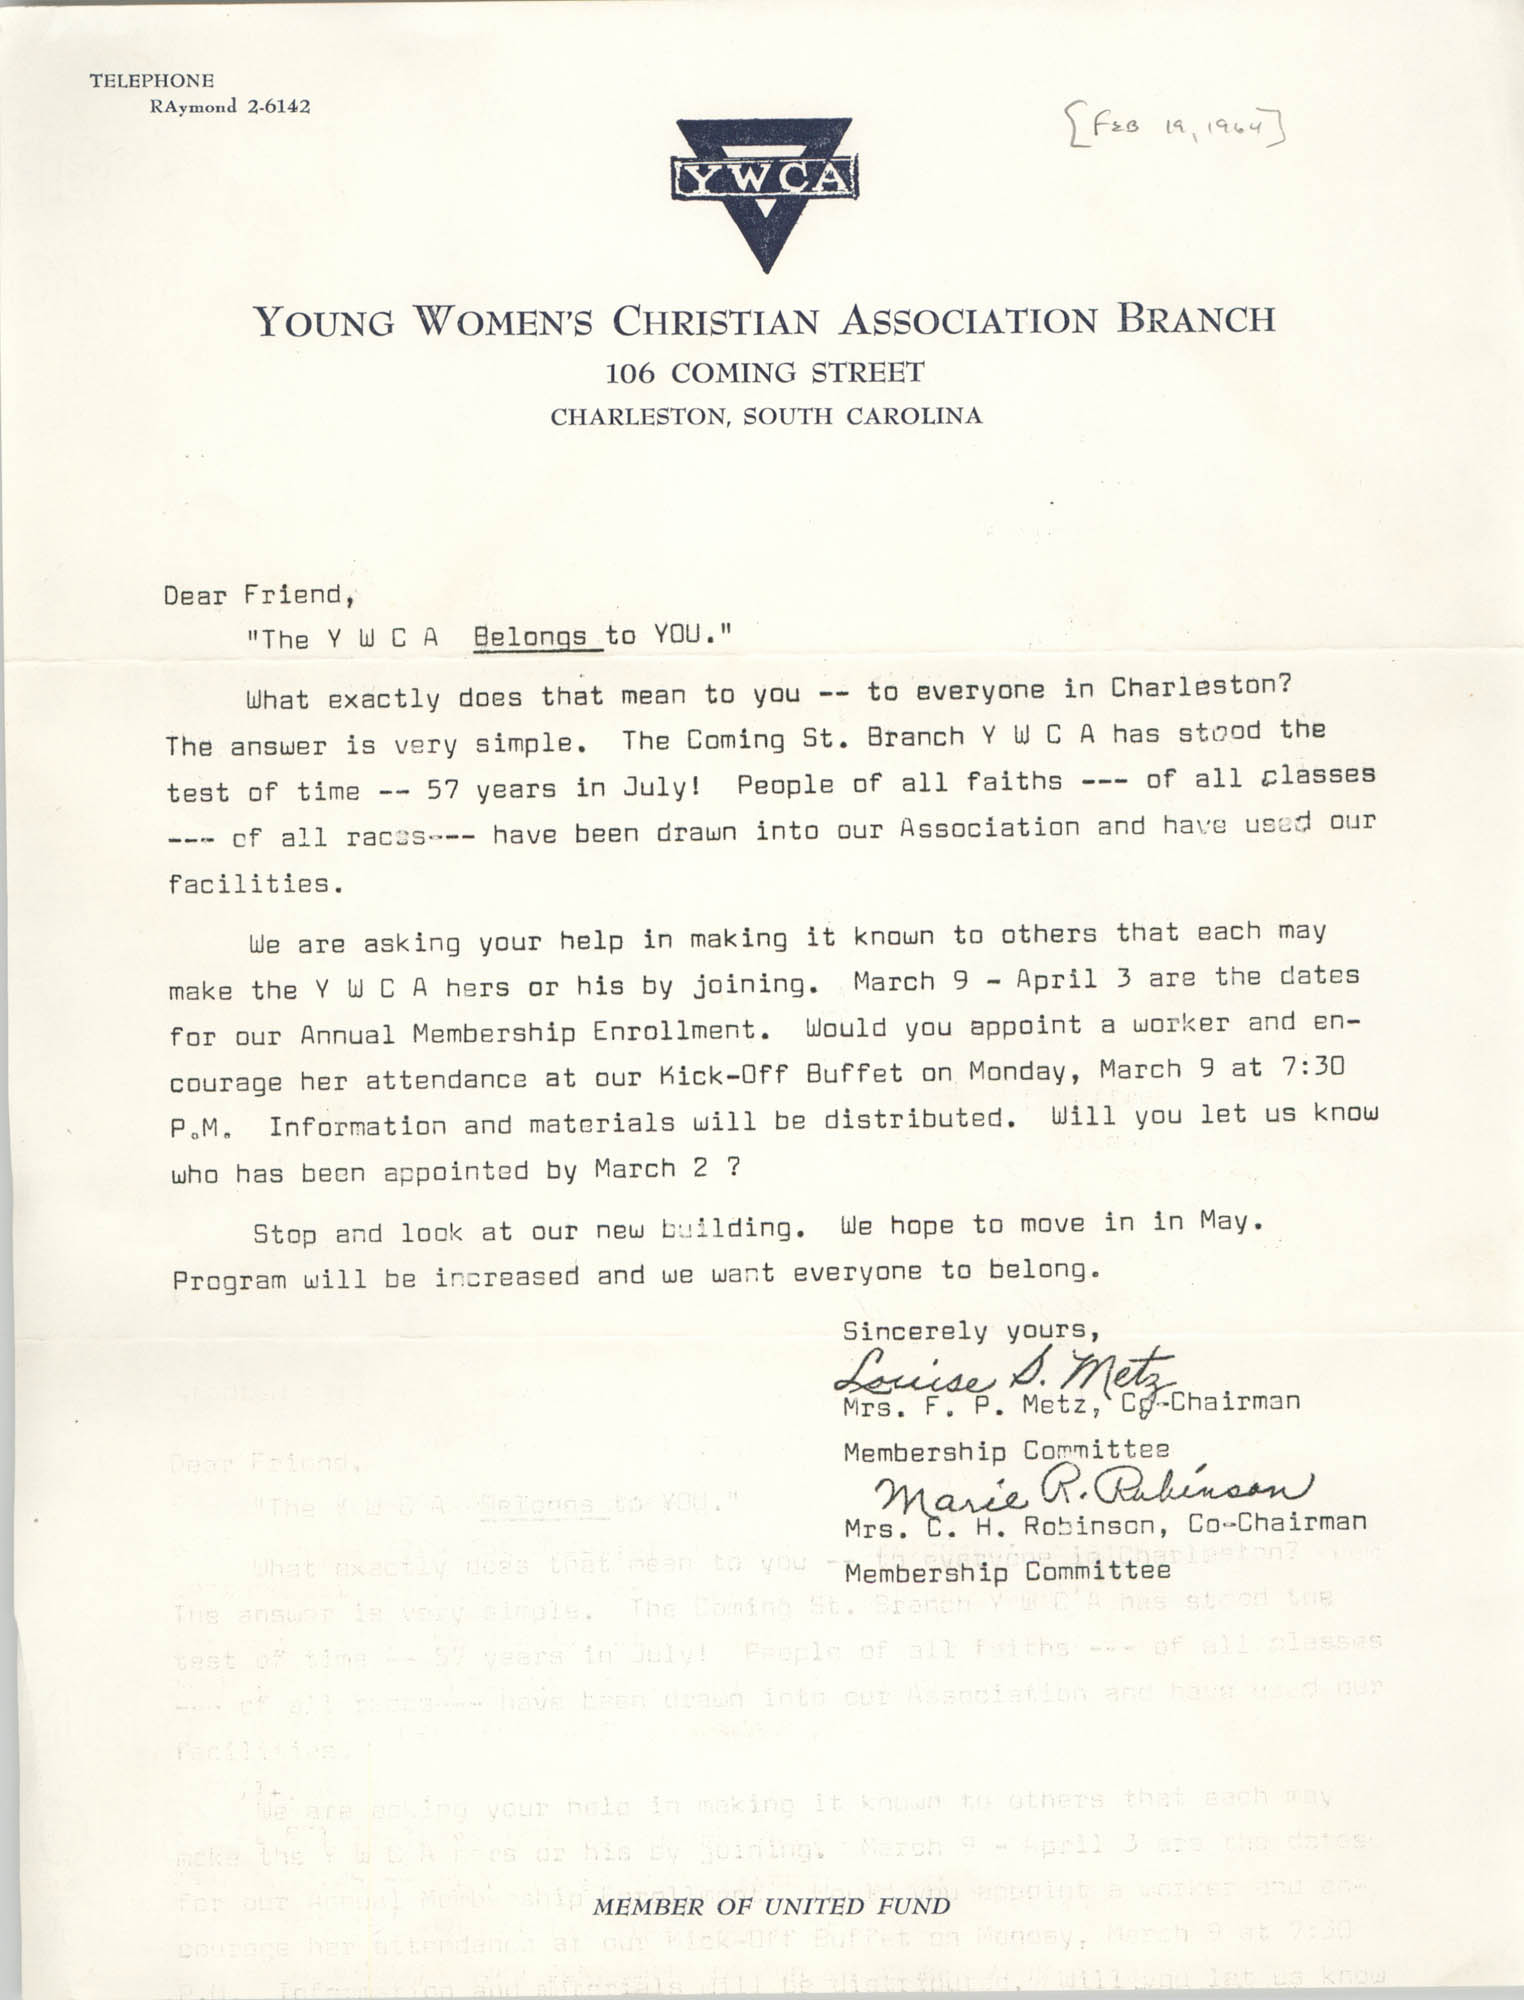 Letter from Louise Metz and Marie R. Robinson, February 19, 1964